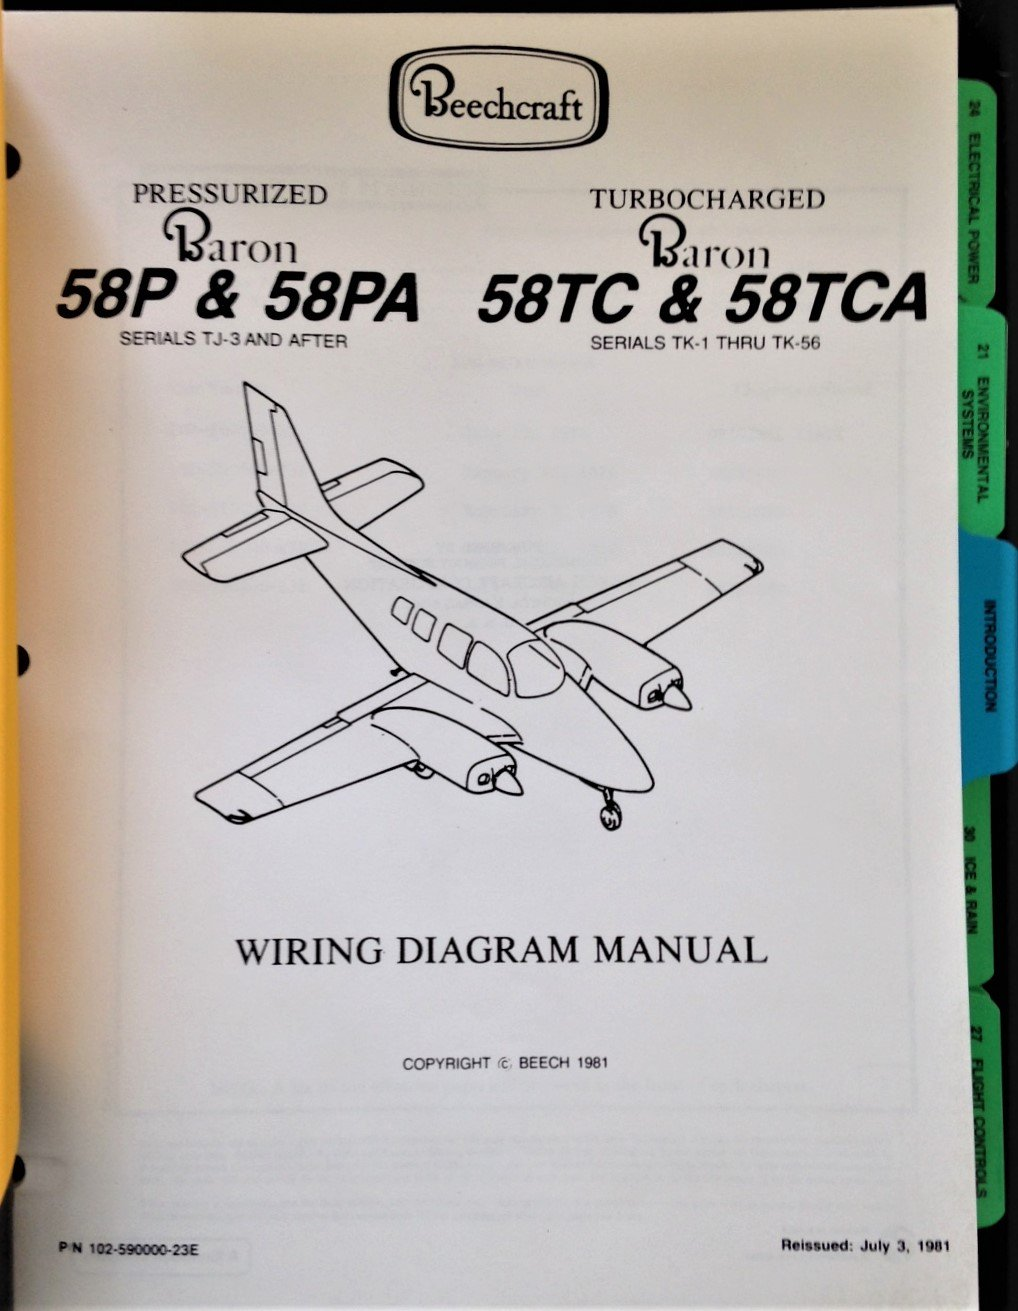 Strange Beechcraft Baron Wiring Diagram Manual Beech Aircraft Corporation Wiring 101 Relewellnesstrialsorg